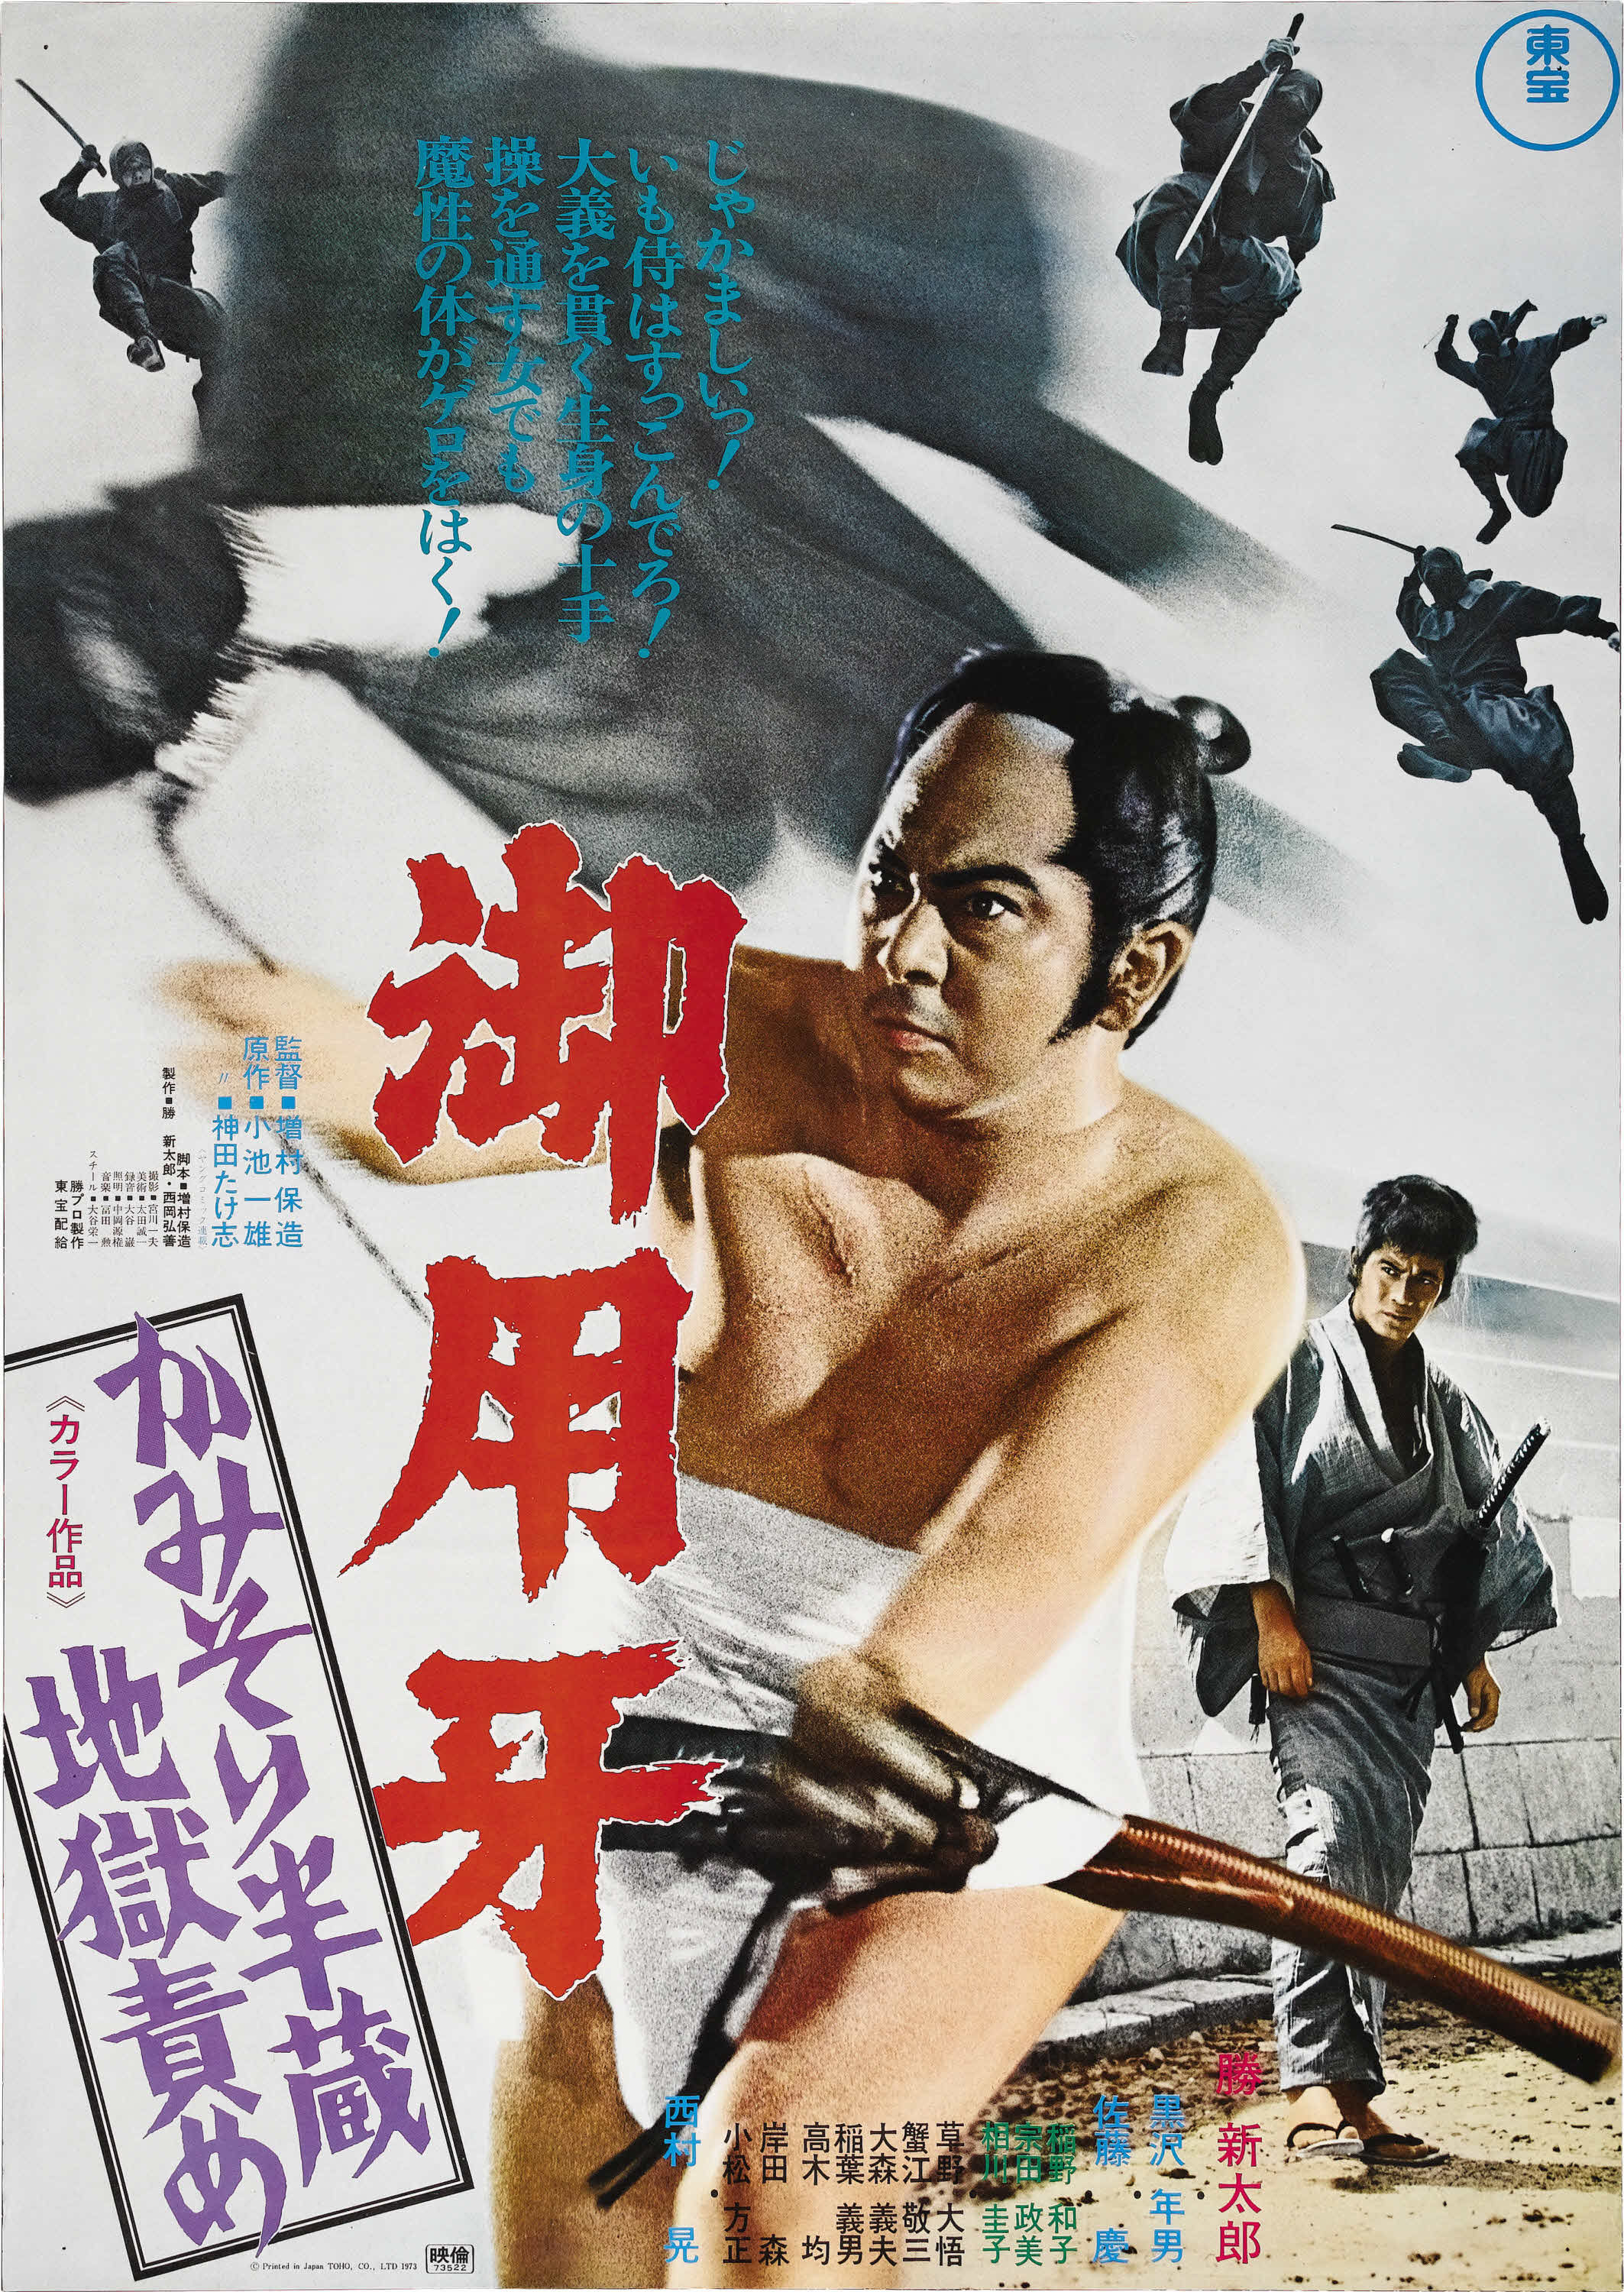 Affiche japonaise de Hanzo the Razor - l'enfer des supplices